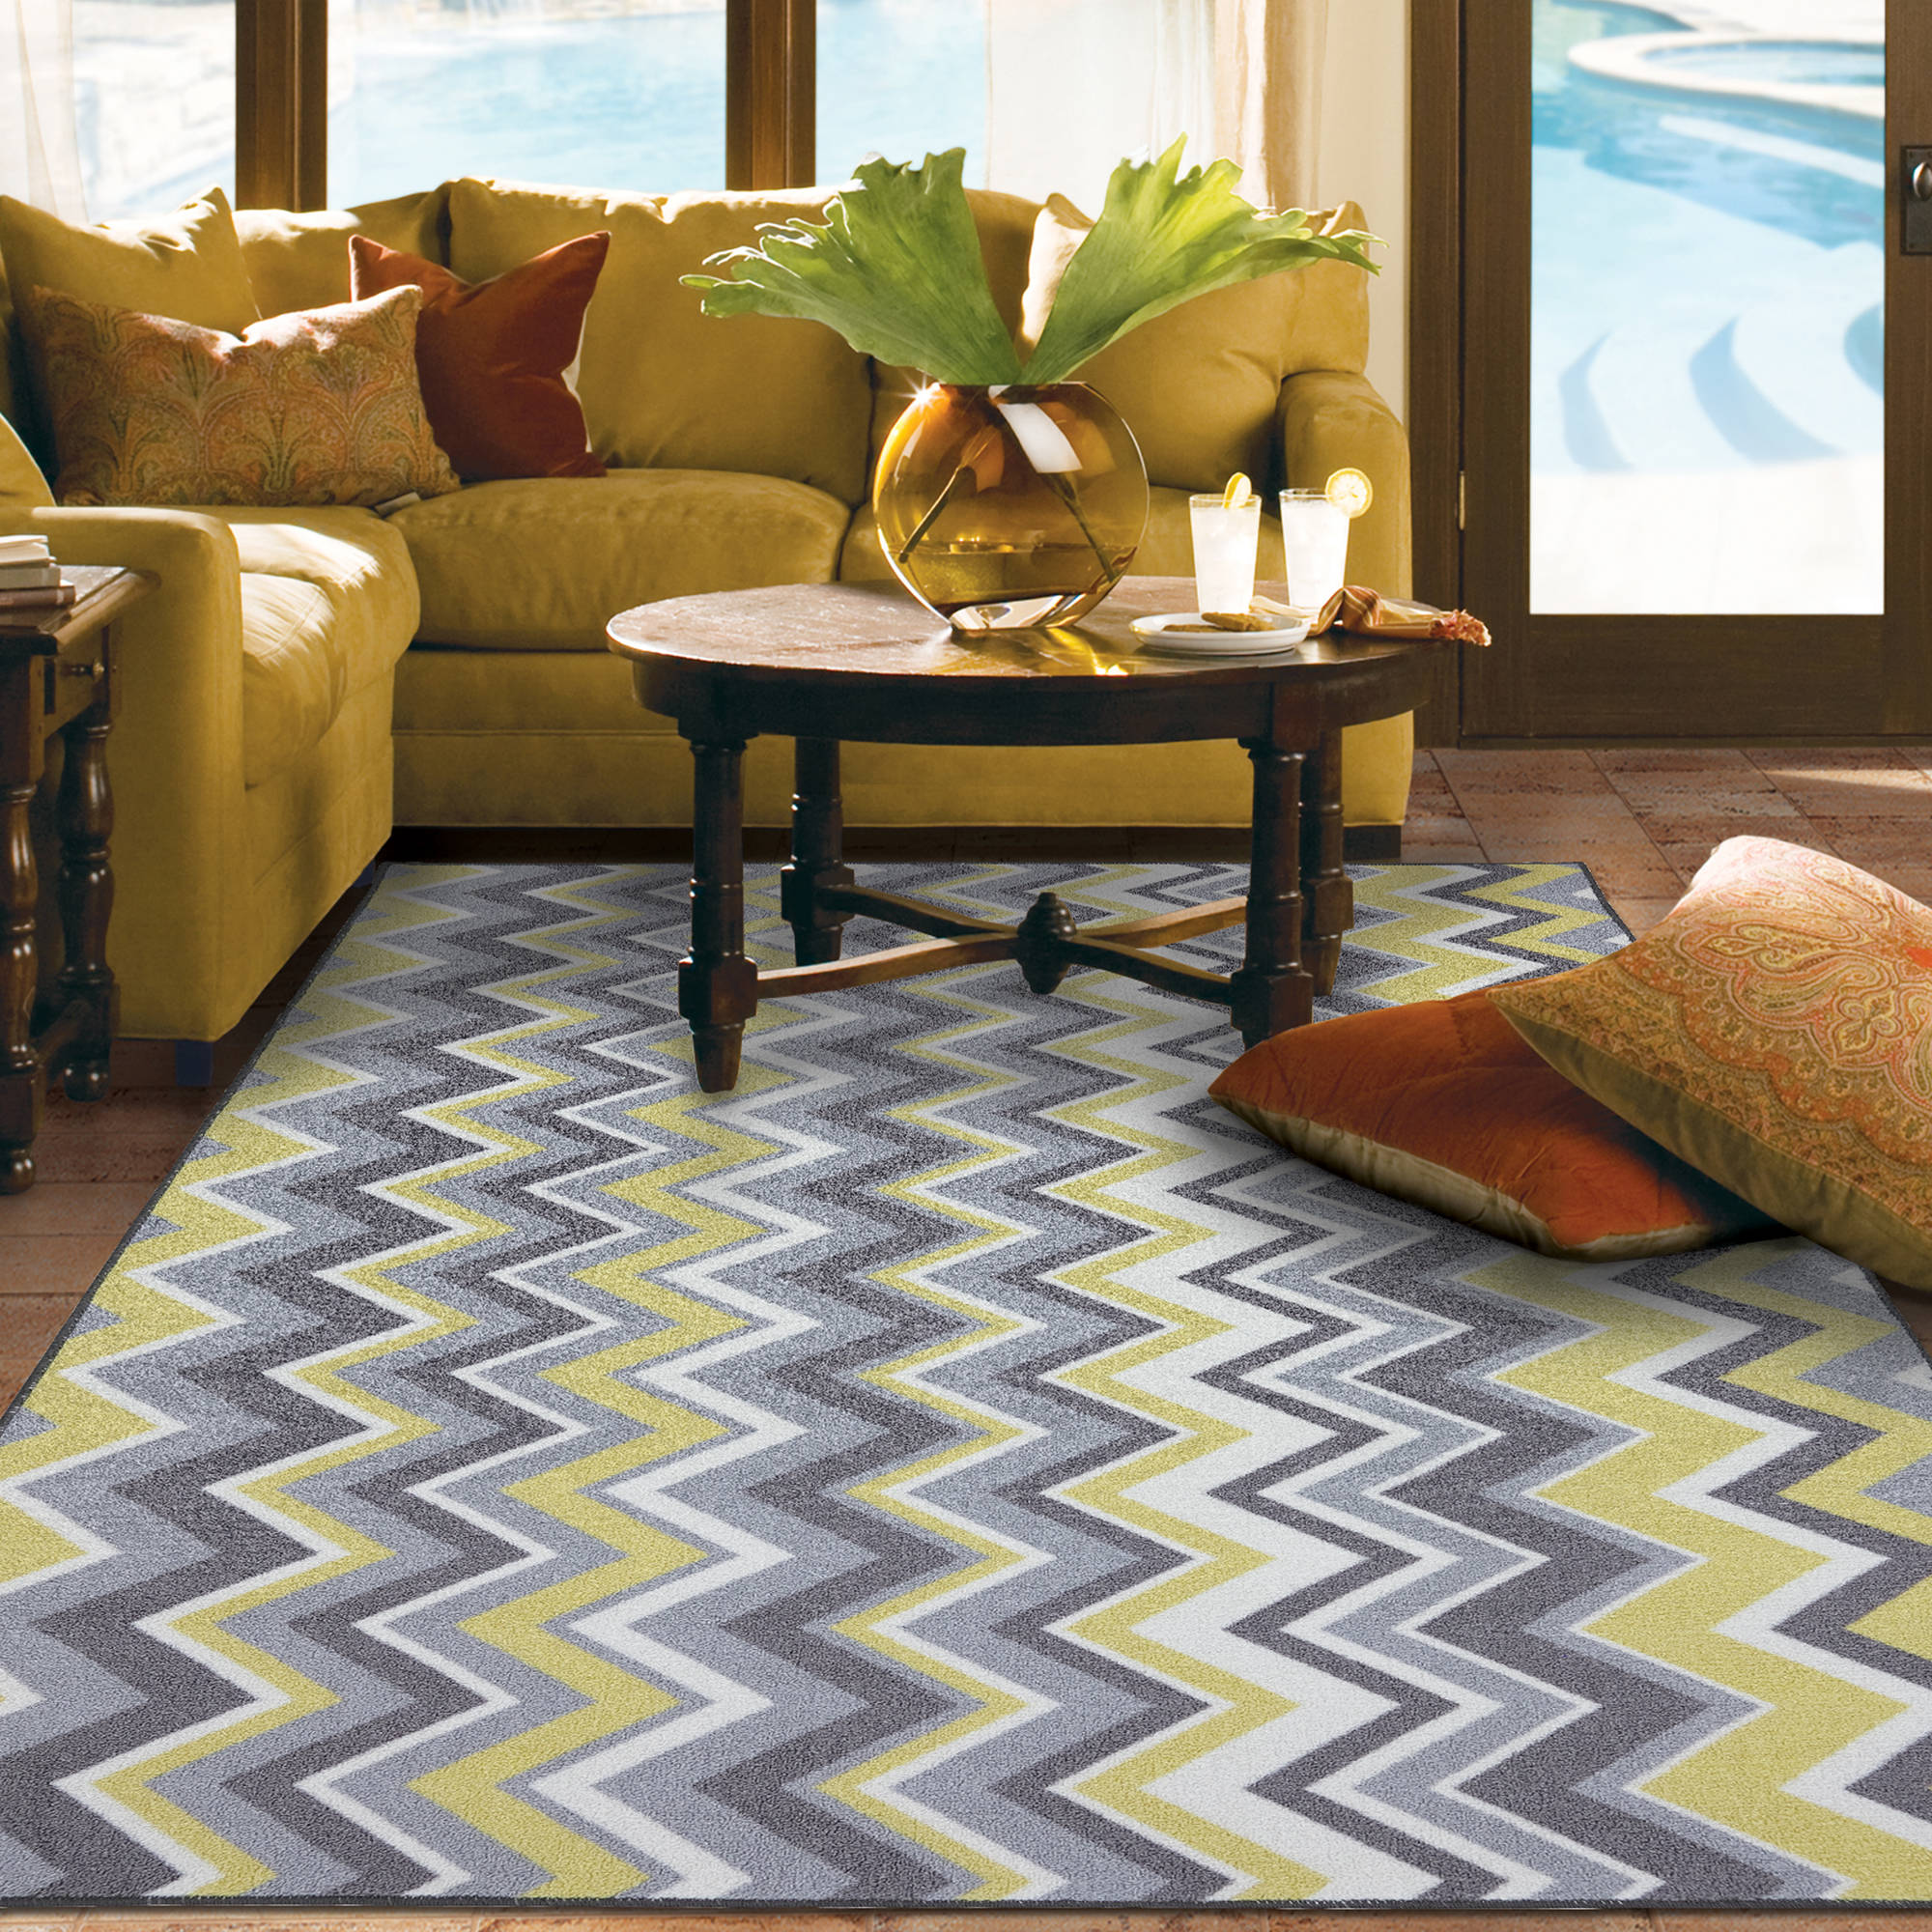 Mohawk Home Ella Zig Zag Indoor/Outdoor Nylon Rug, Yellow   Walmart.com